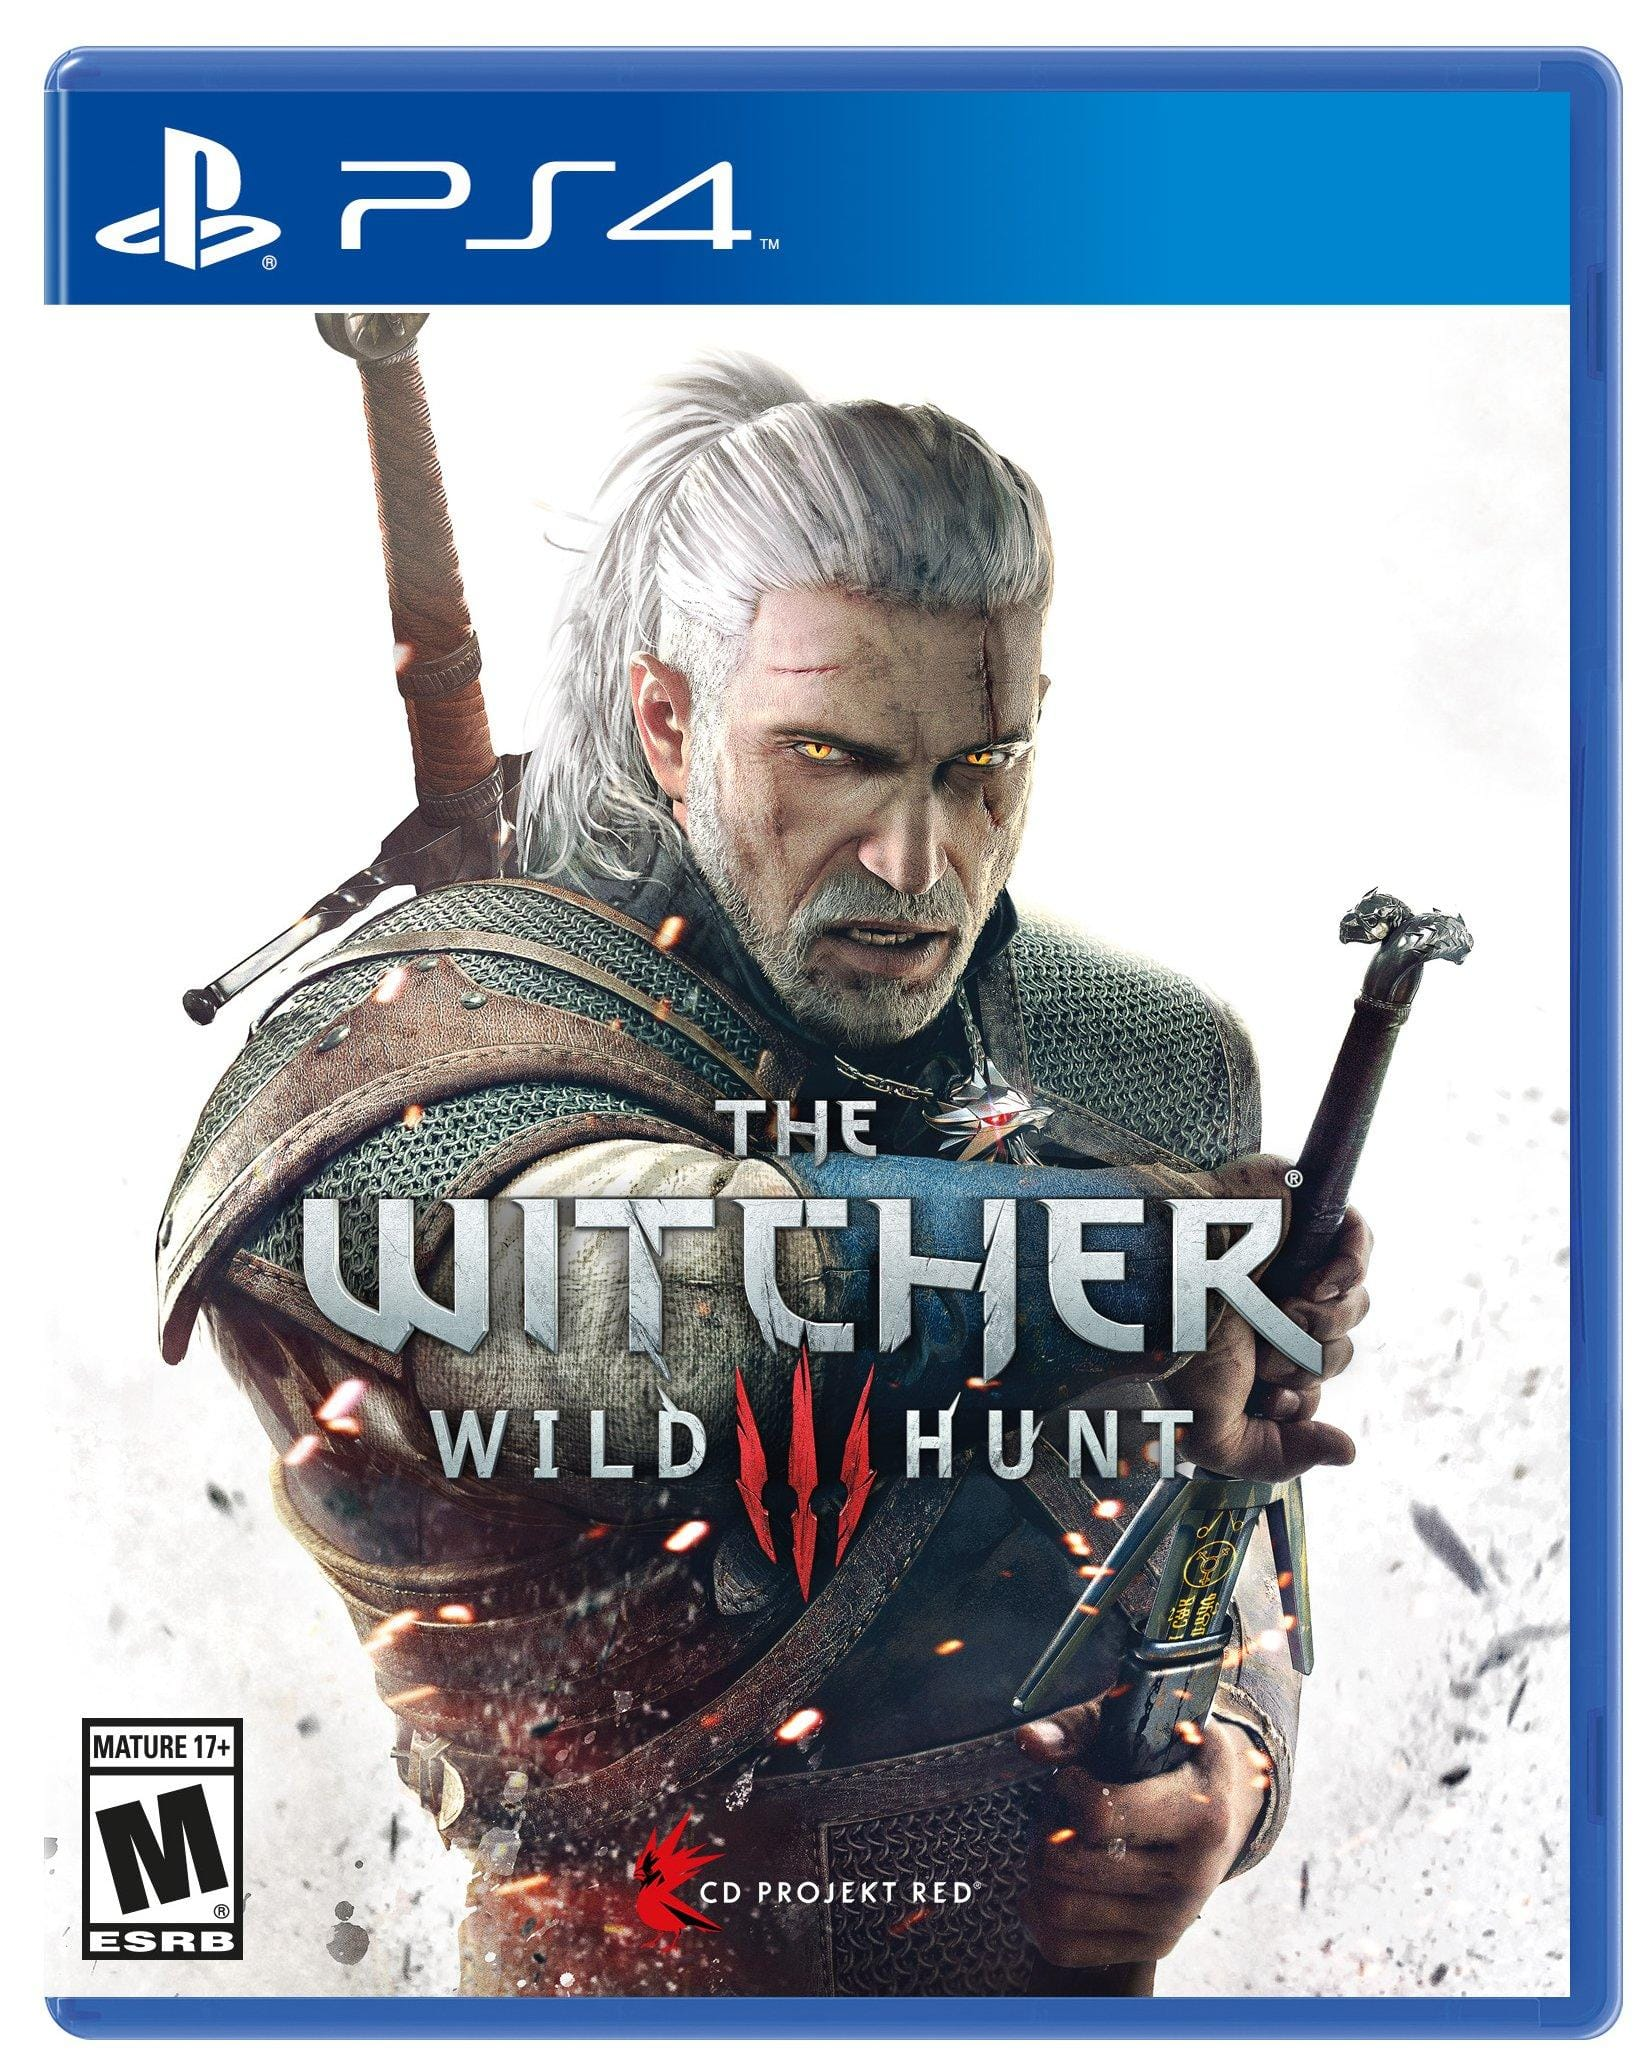 The Witcher III: Wild Hunt | Xbox One | PlayStation 4 |Plus Free Next Gen Upgrade $7.99 at Gamestop